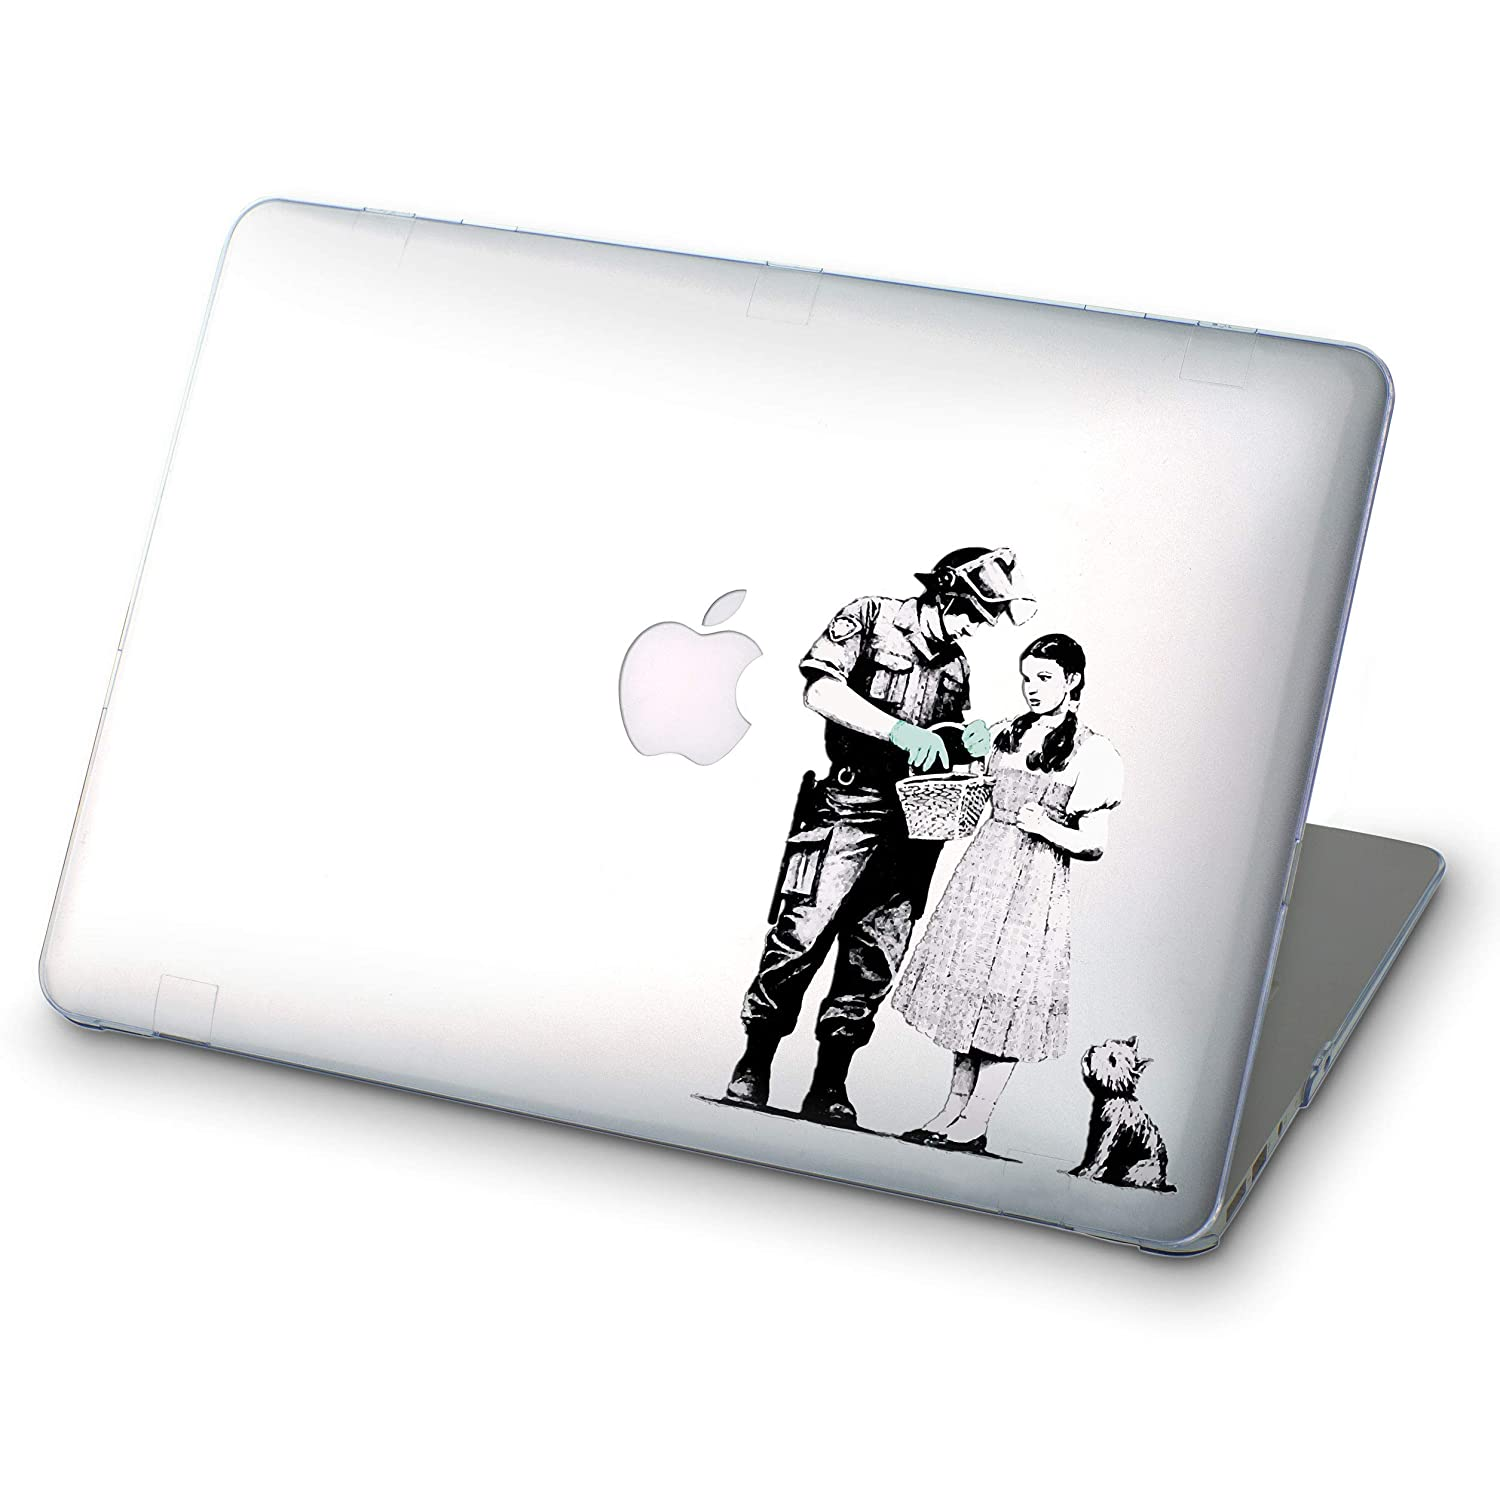 Banksy Soldier Searching Girl Macbook Air Case With Printed Bottom Hard Mac Pro Case for Mac Book Air 13 in Air 11 Pro 13 2016 Pro 15 inch 2017 Pro Retina 15 MacBook 12 Retina MA3004